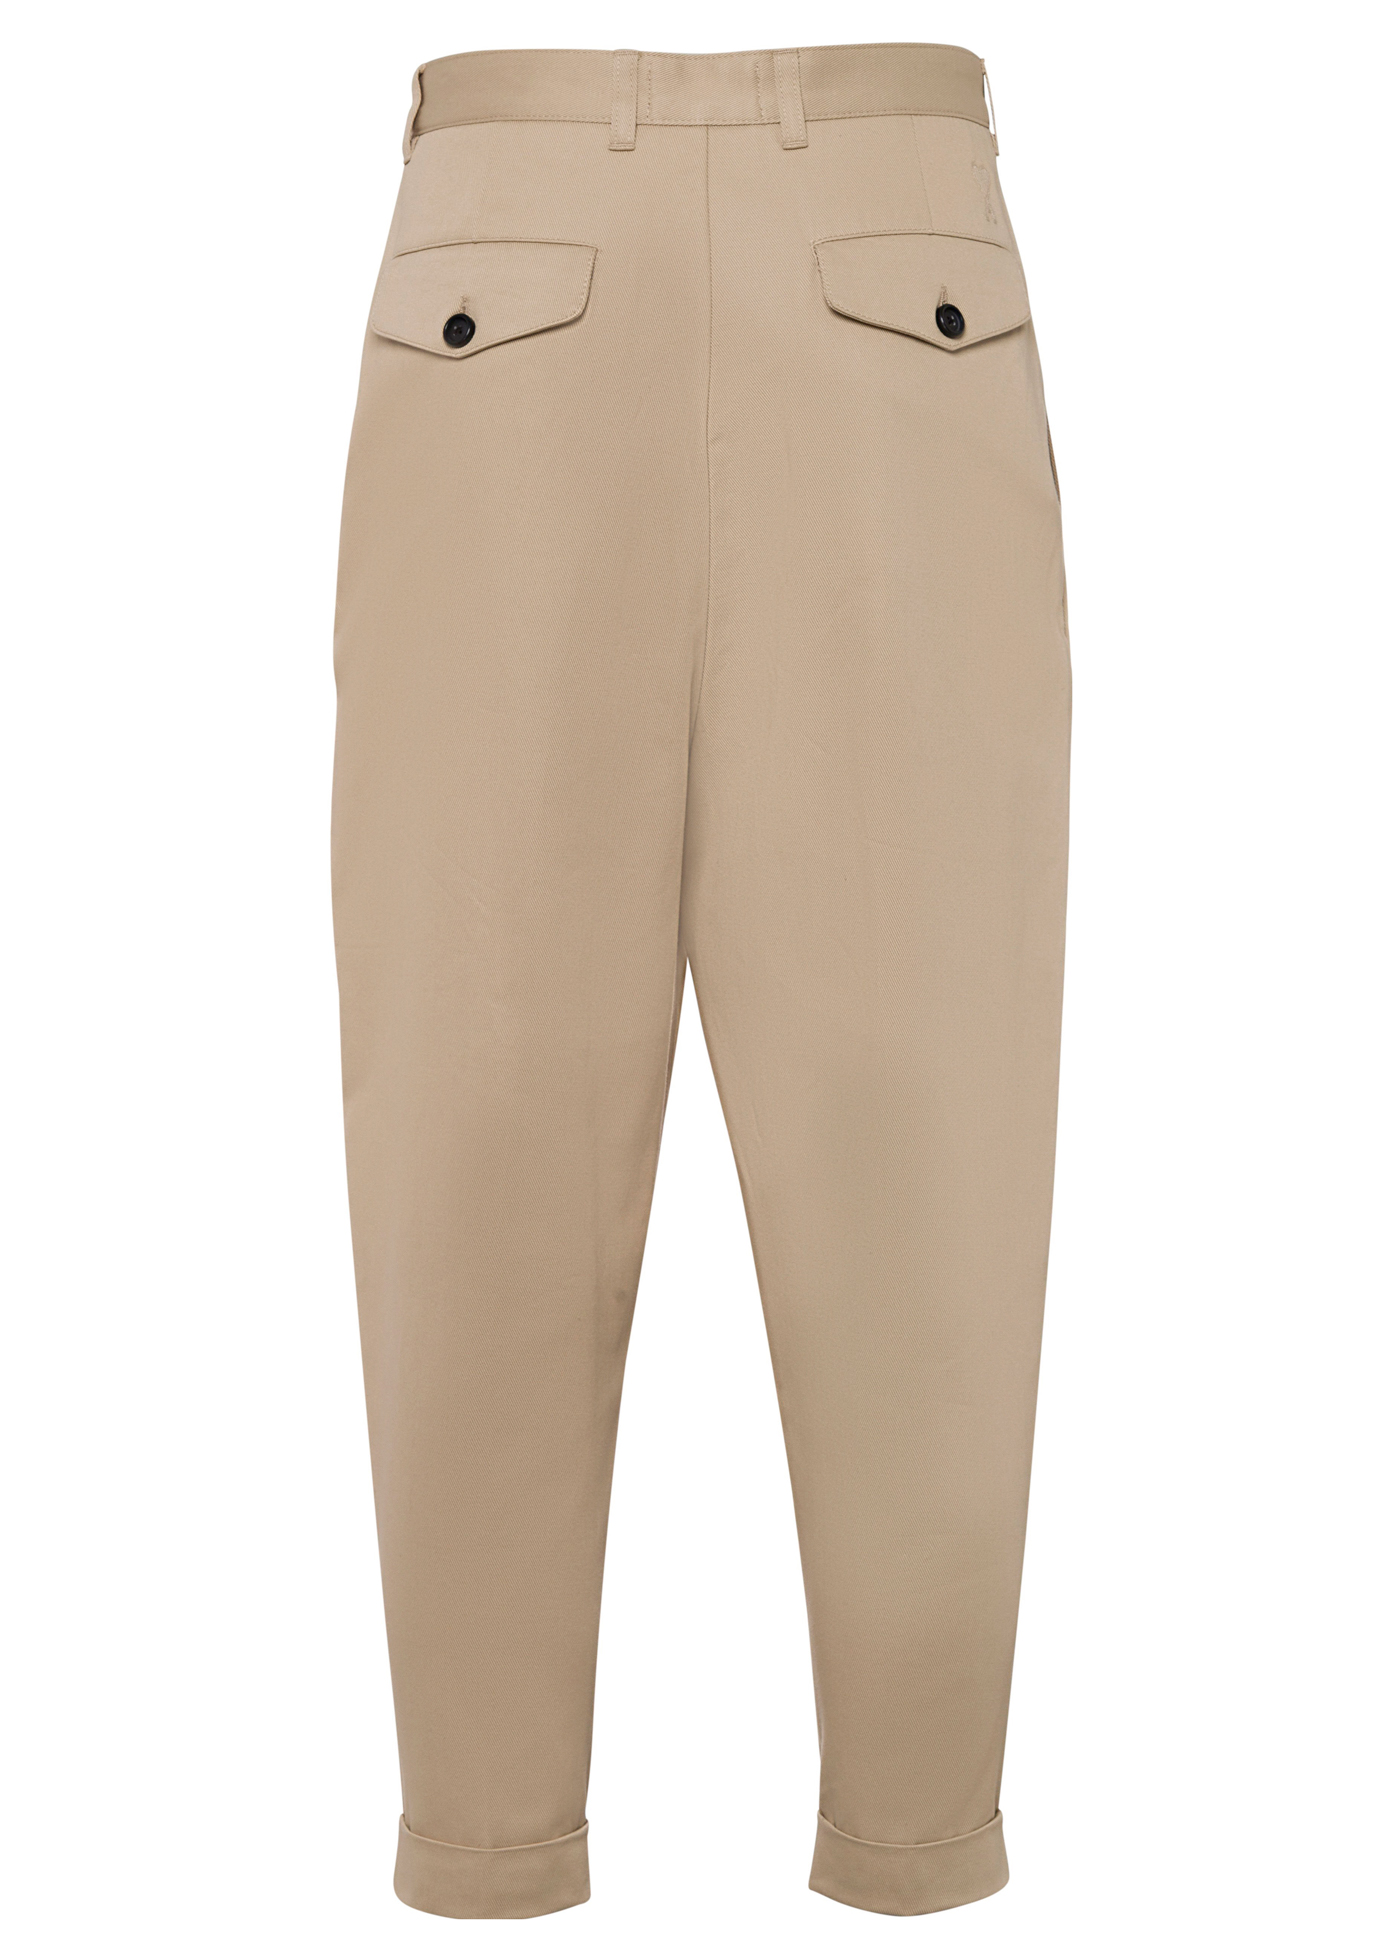 CARROT CHINO TROUSERS image number 1